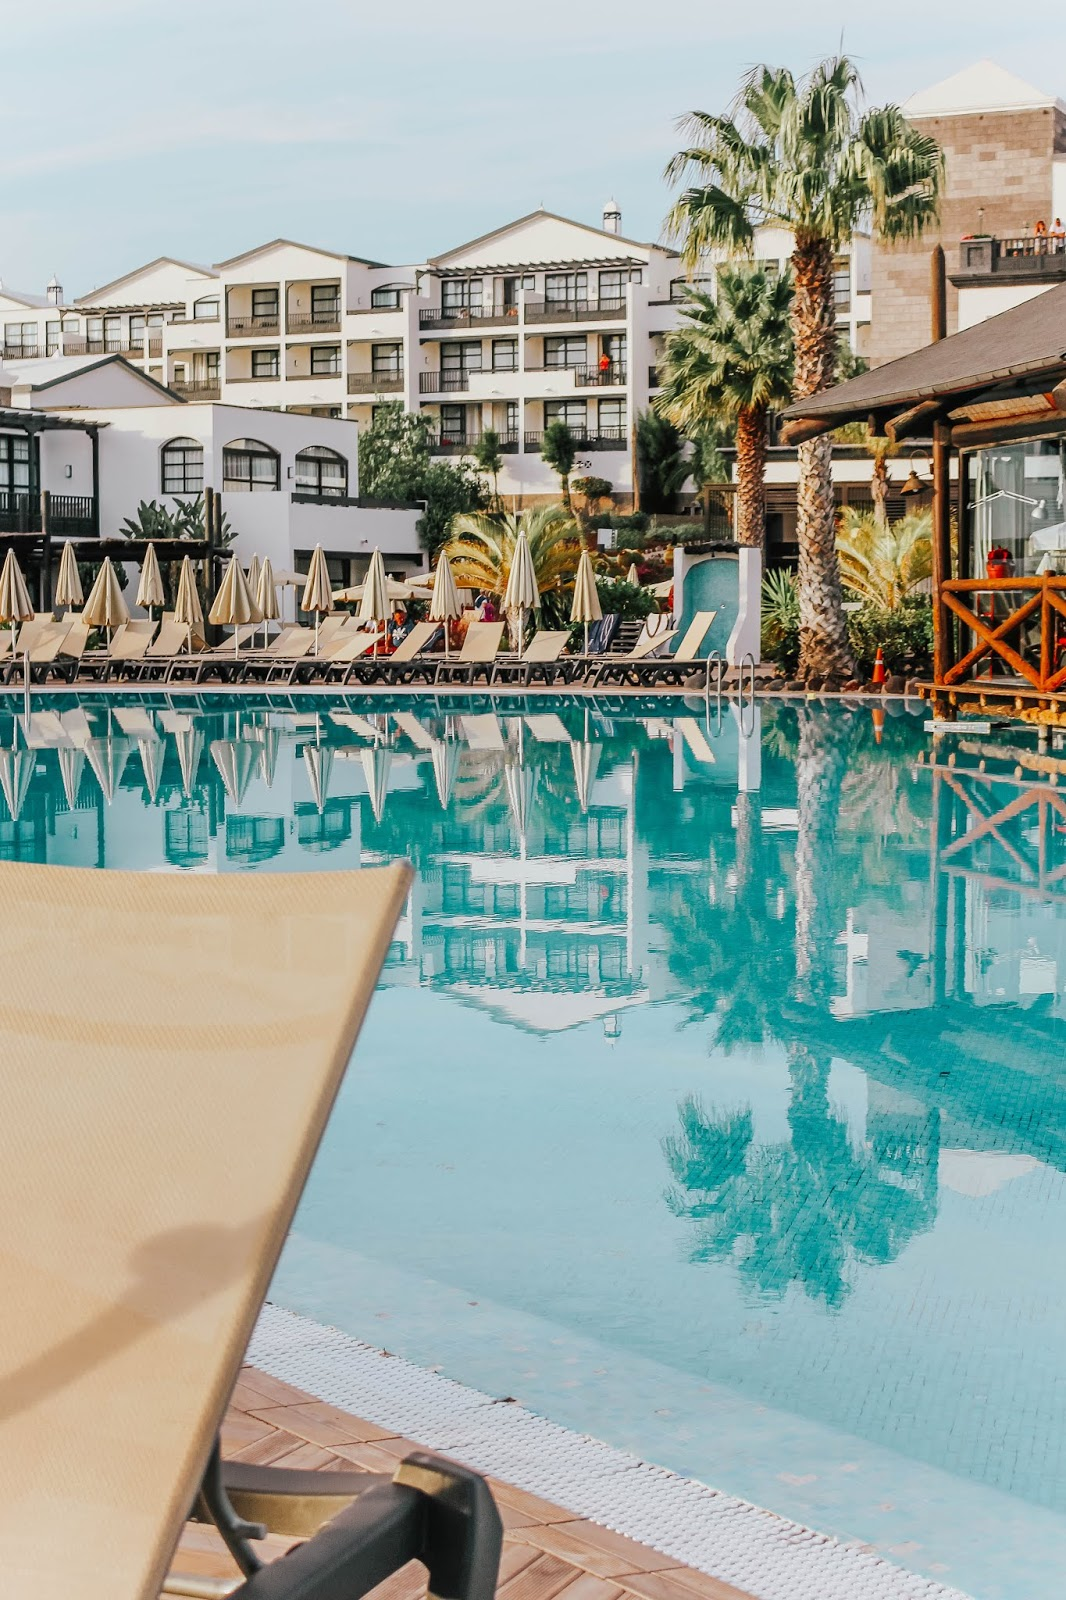 H10 Rubicon Palace Hotel Outdoor Swimming Pool